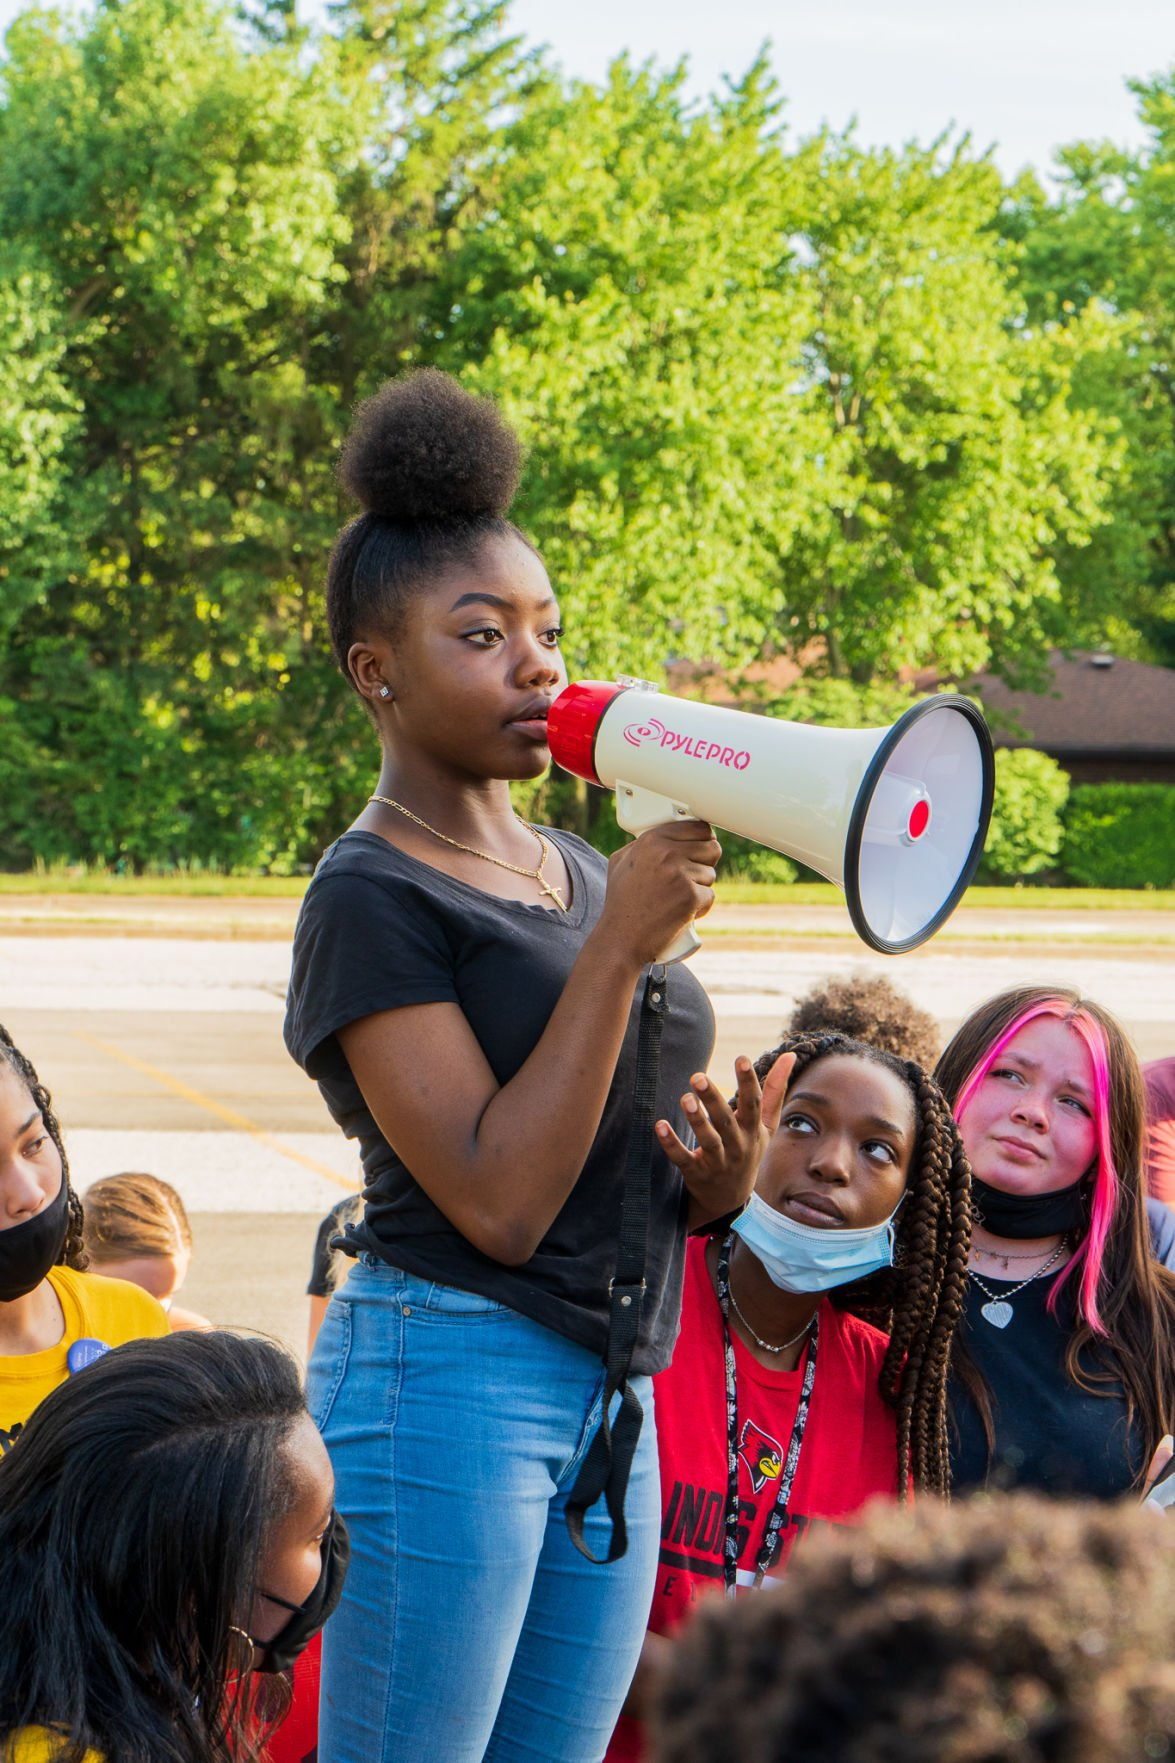 Tania Boomo at Normal Community West High School Protests